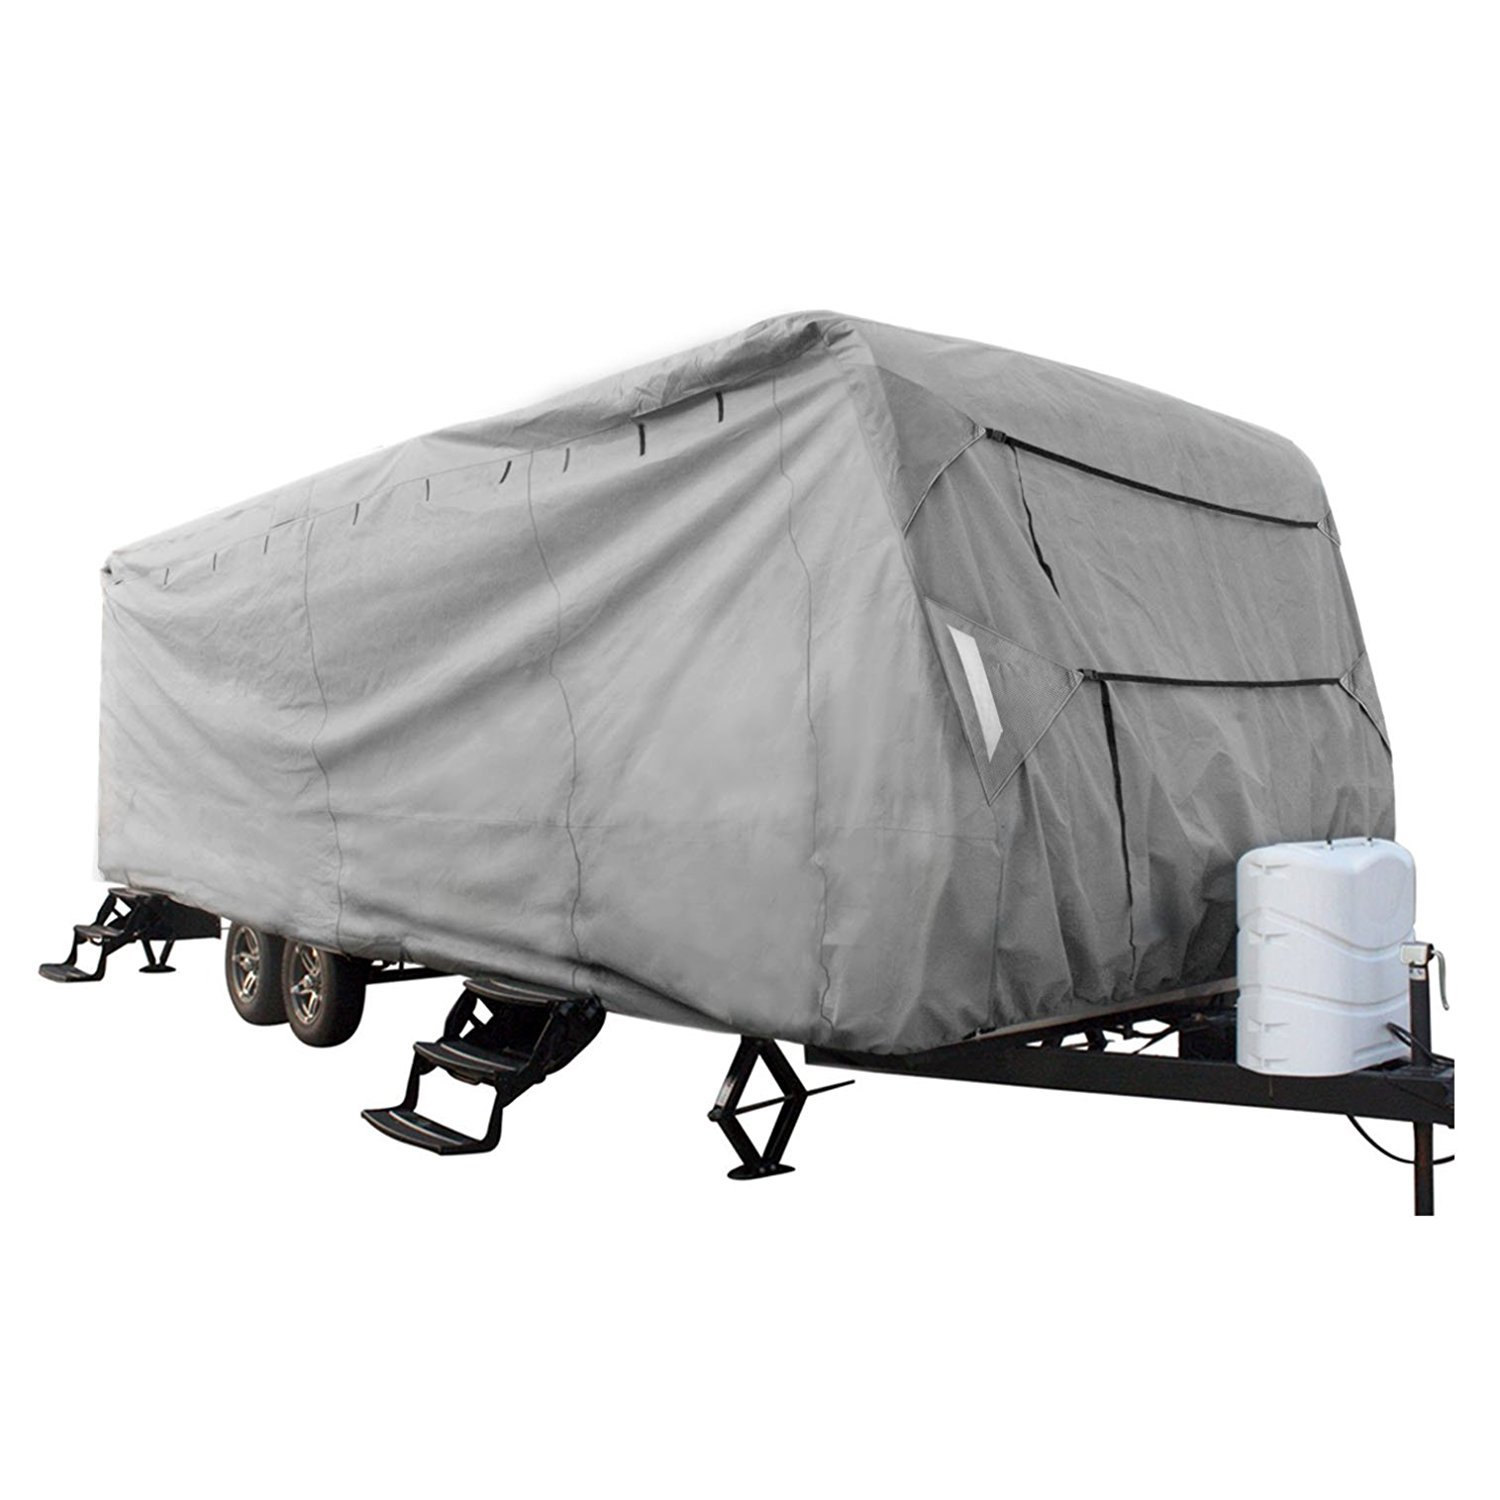 XGear Outdoors Travel Trailer RV Cover, Fits 22' - 24' Travel Trailer or Toy Hauler, with 3-Ply Roof for Max Weather Protection, Grey by XGear Outdoors